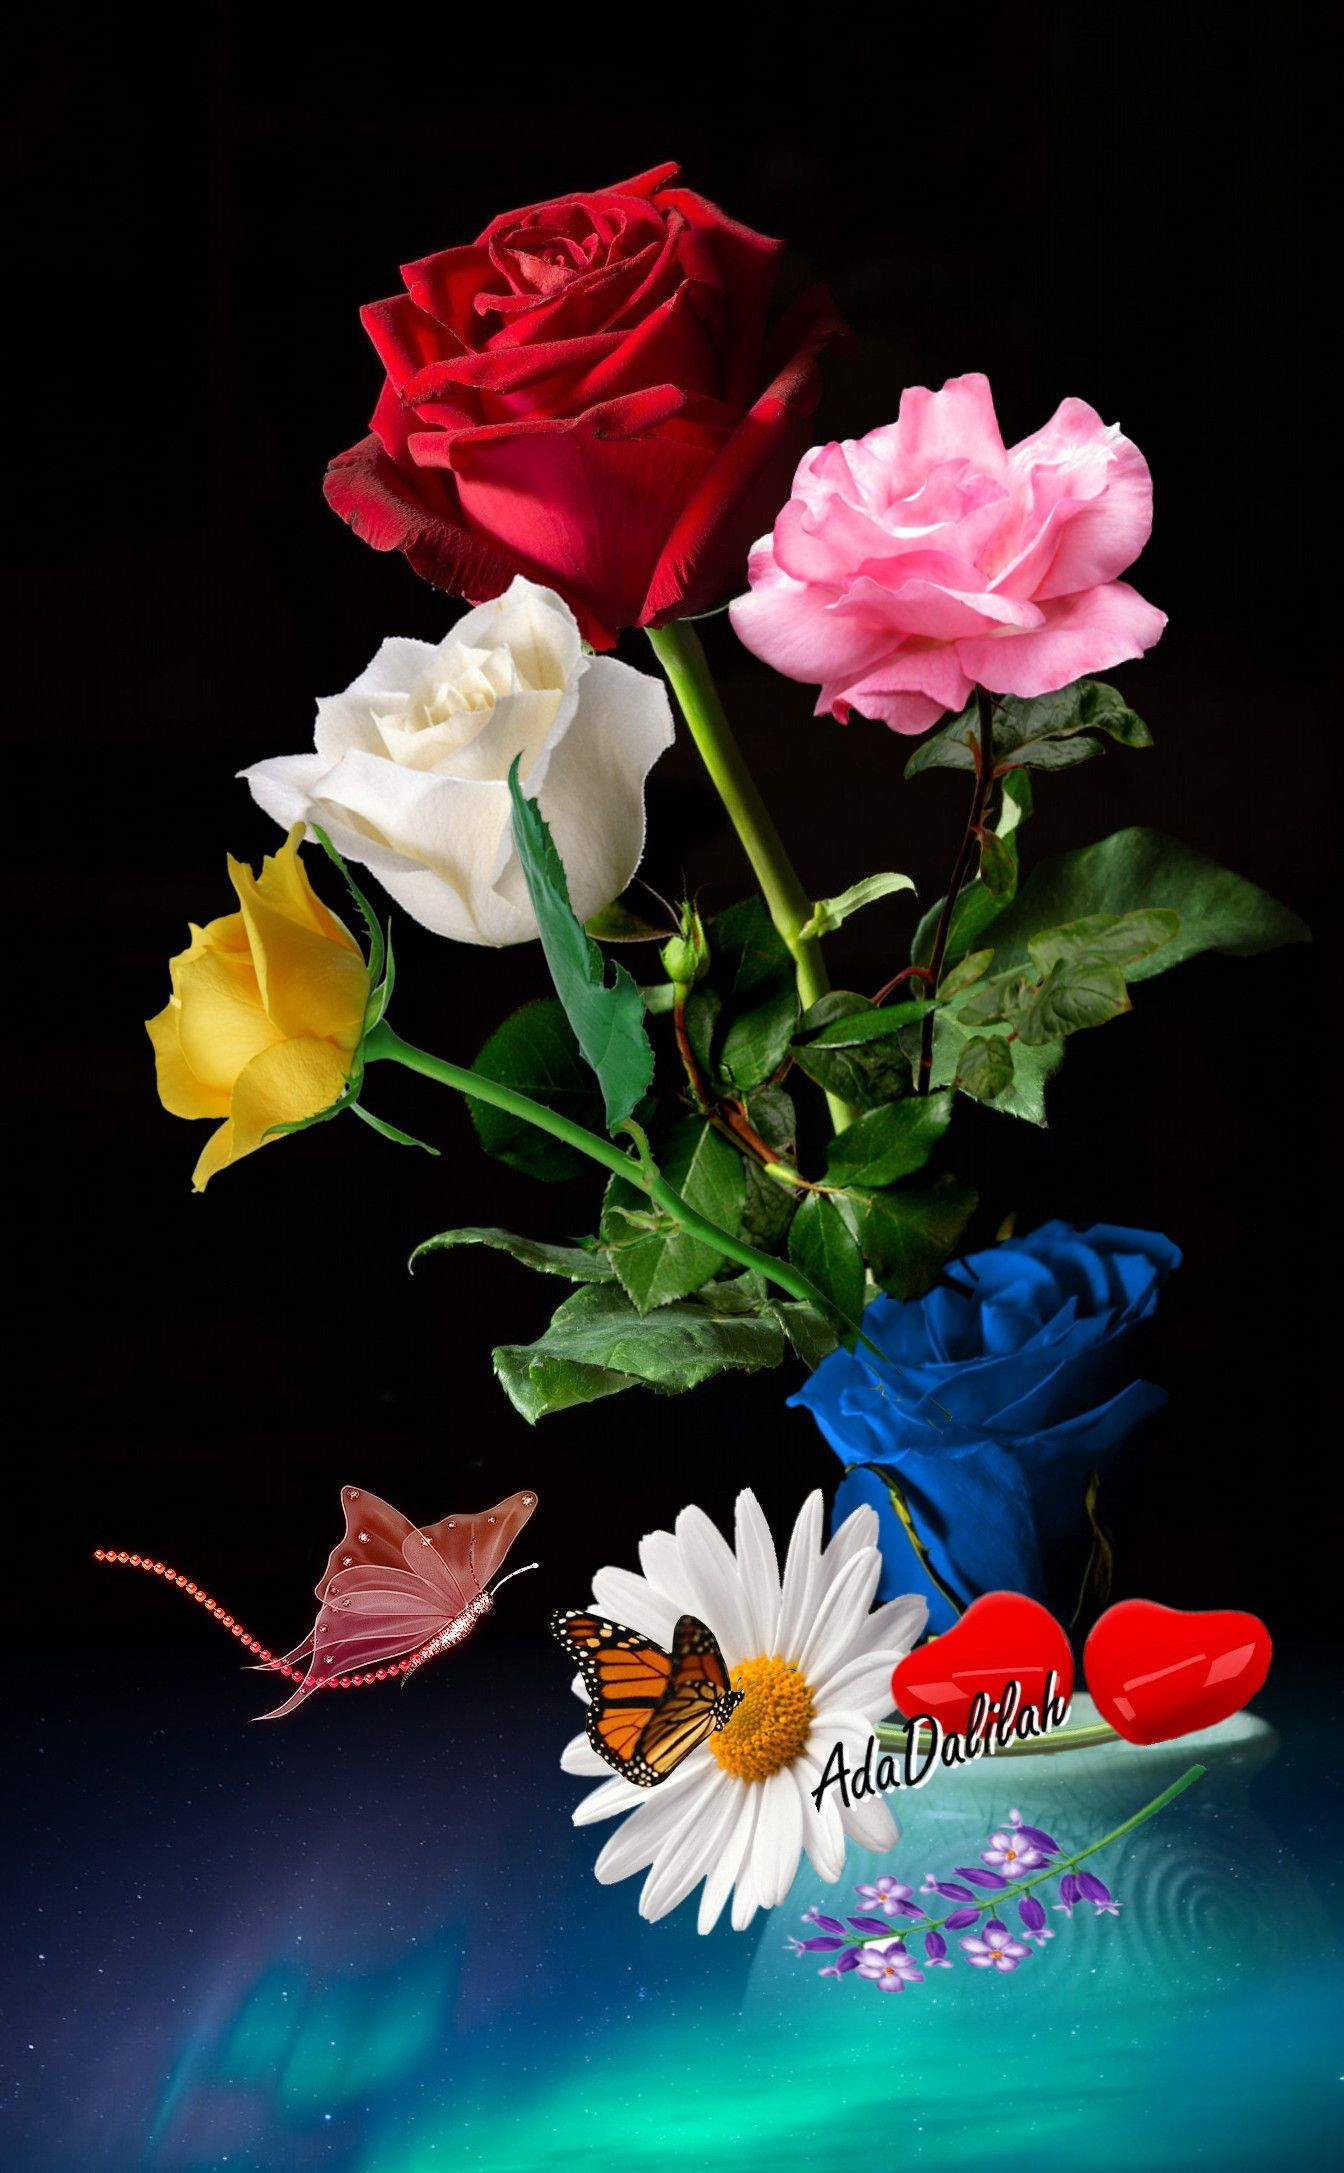 Pin By Ilhanure On Guller Beautiful Flowers Wallpapers Best Flower Wallpaper Most Beautiful Flowers Amazing flower wallpaper photo